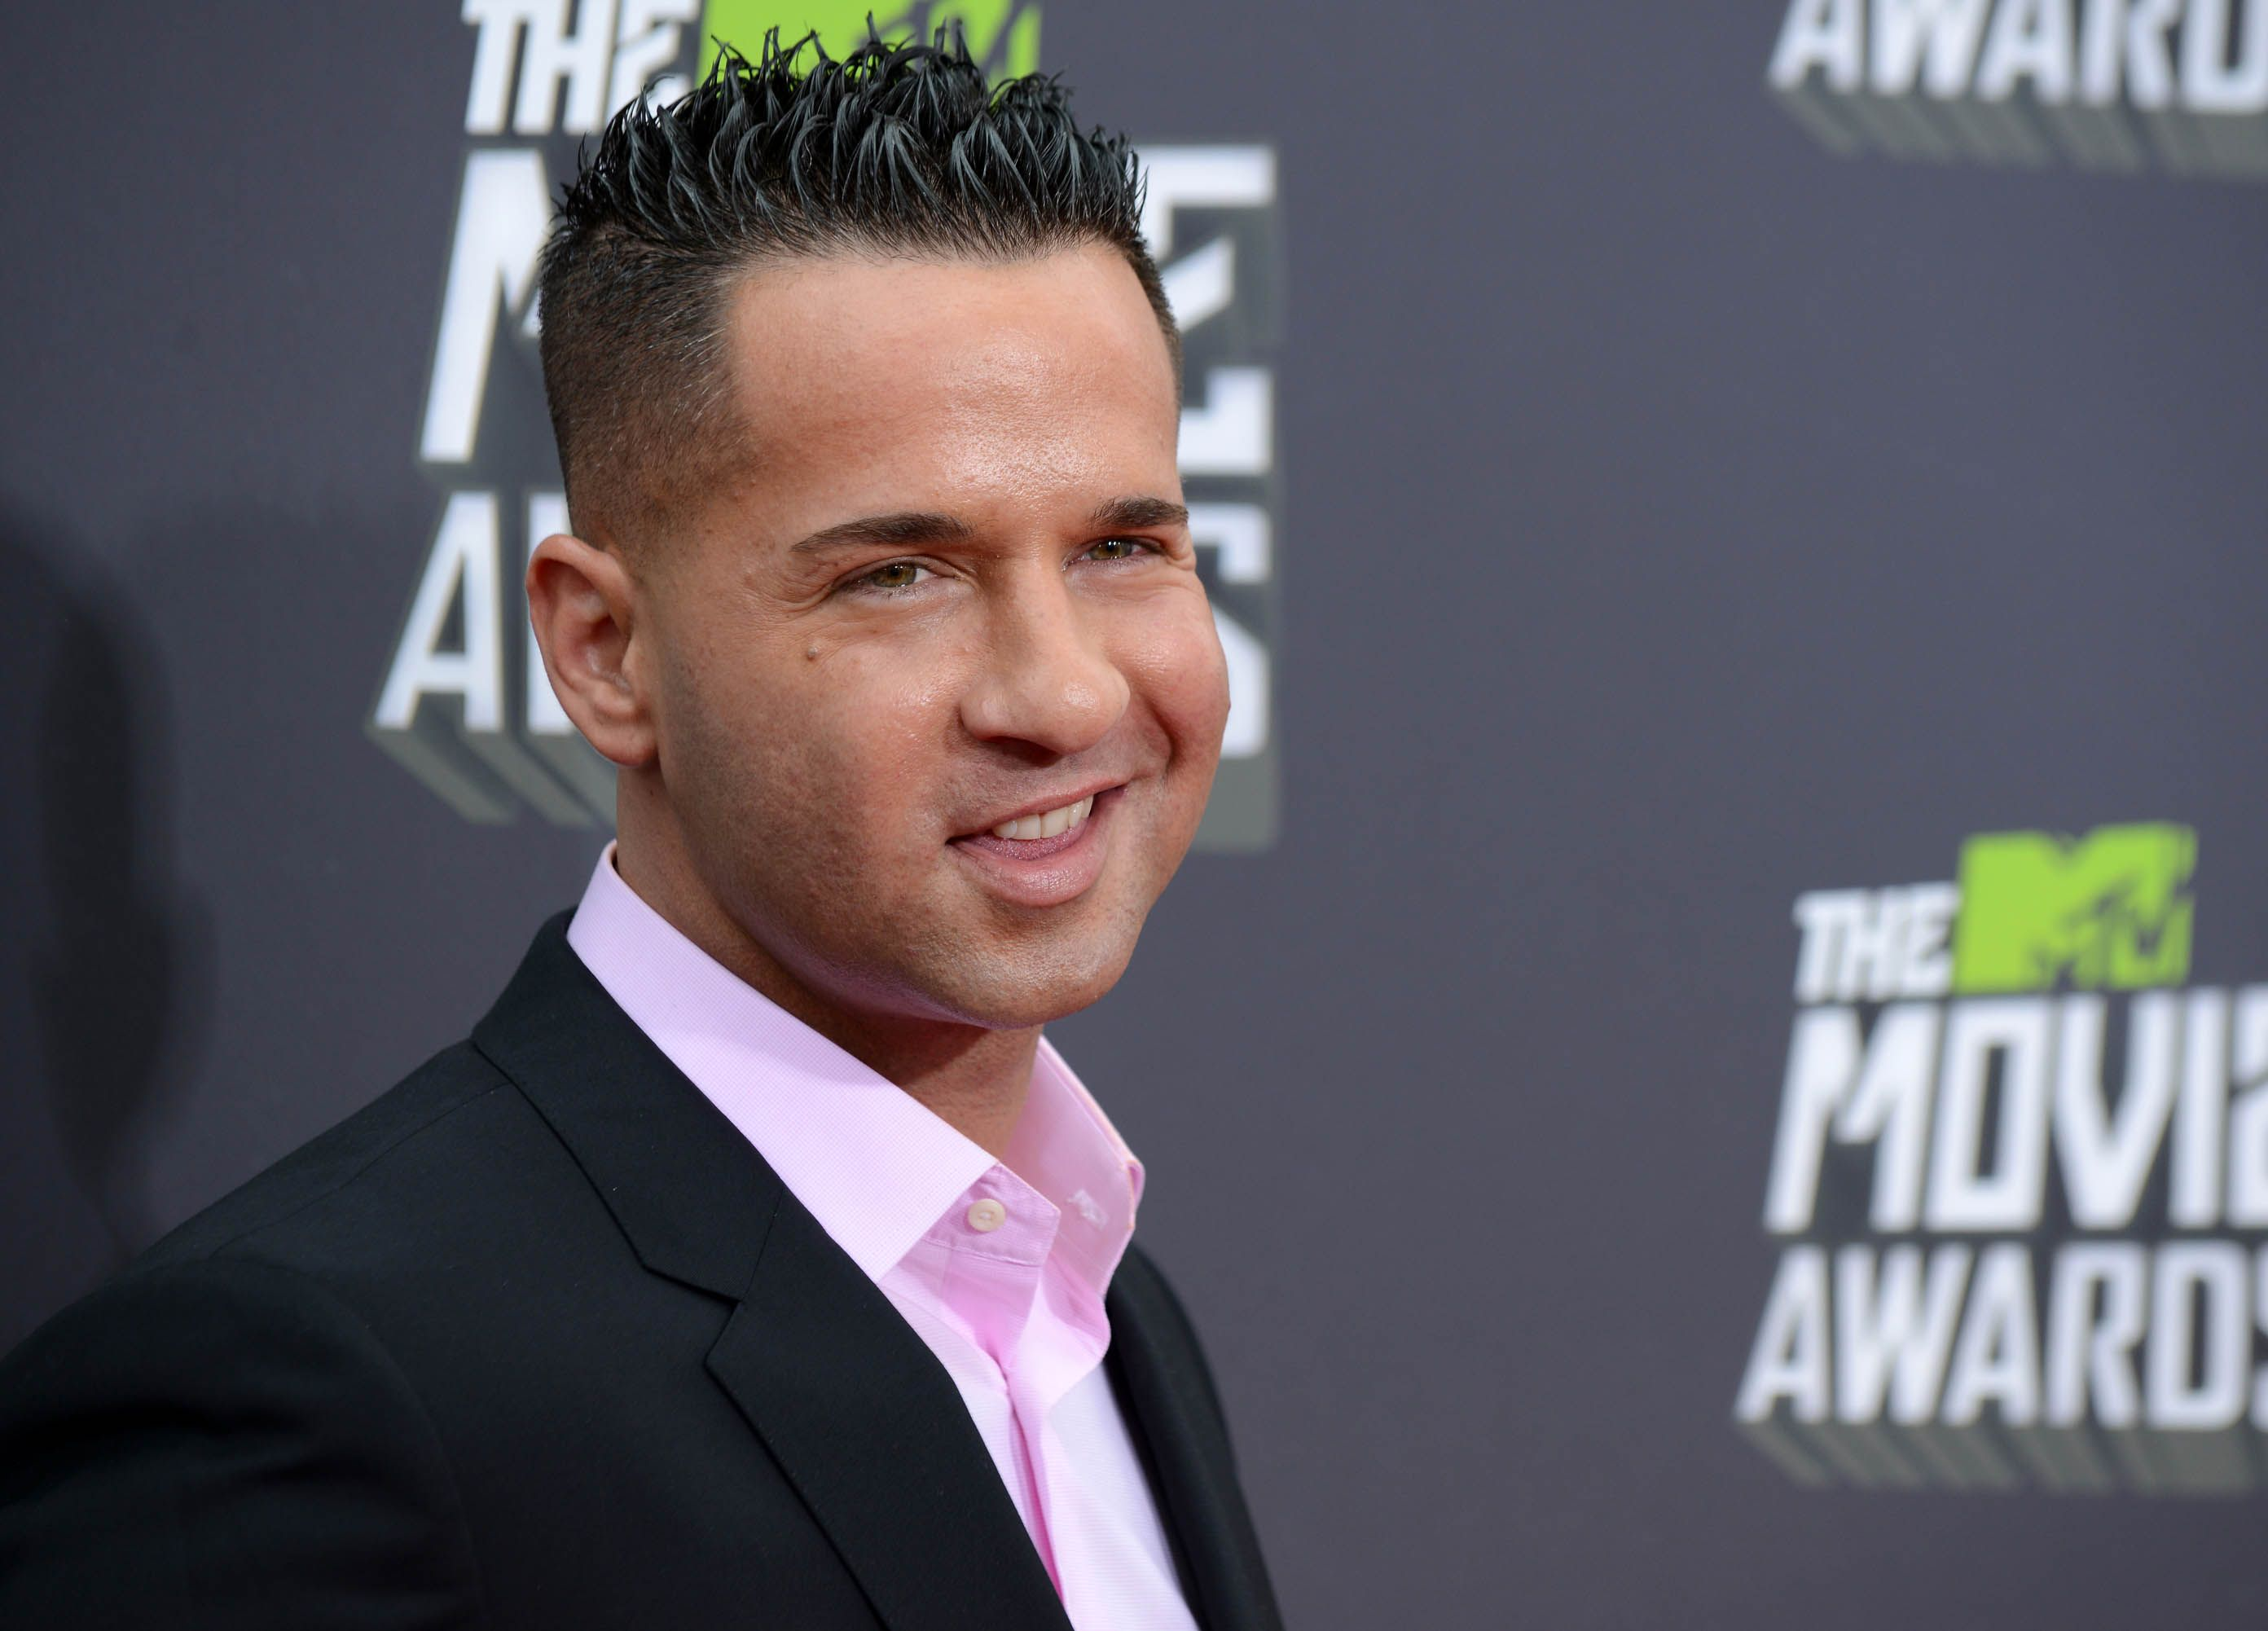 'Jersey Shore' star Mike 'The Situation' Sorrentino to be sentenced for tax evasion